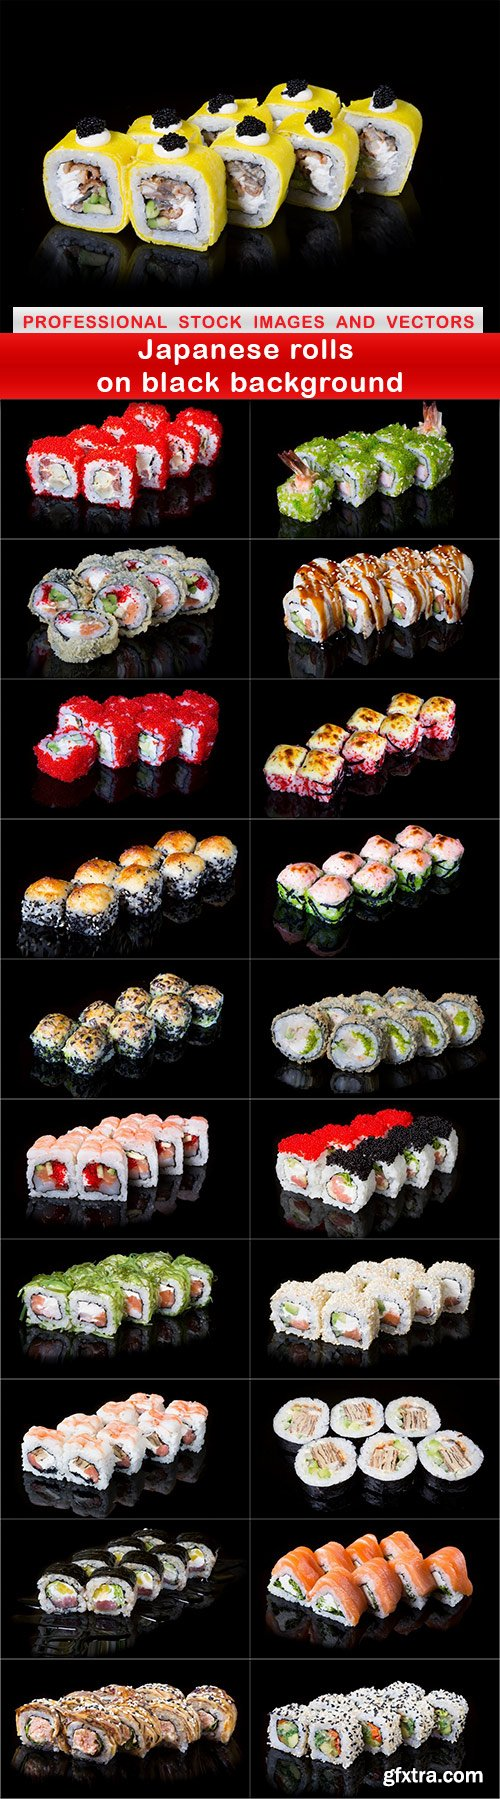 Japanese rolls on black background - 21 UHQ JPEG